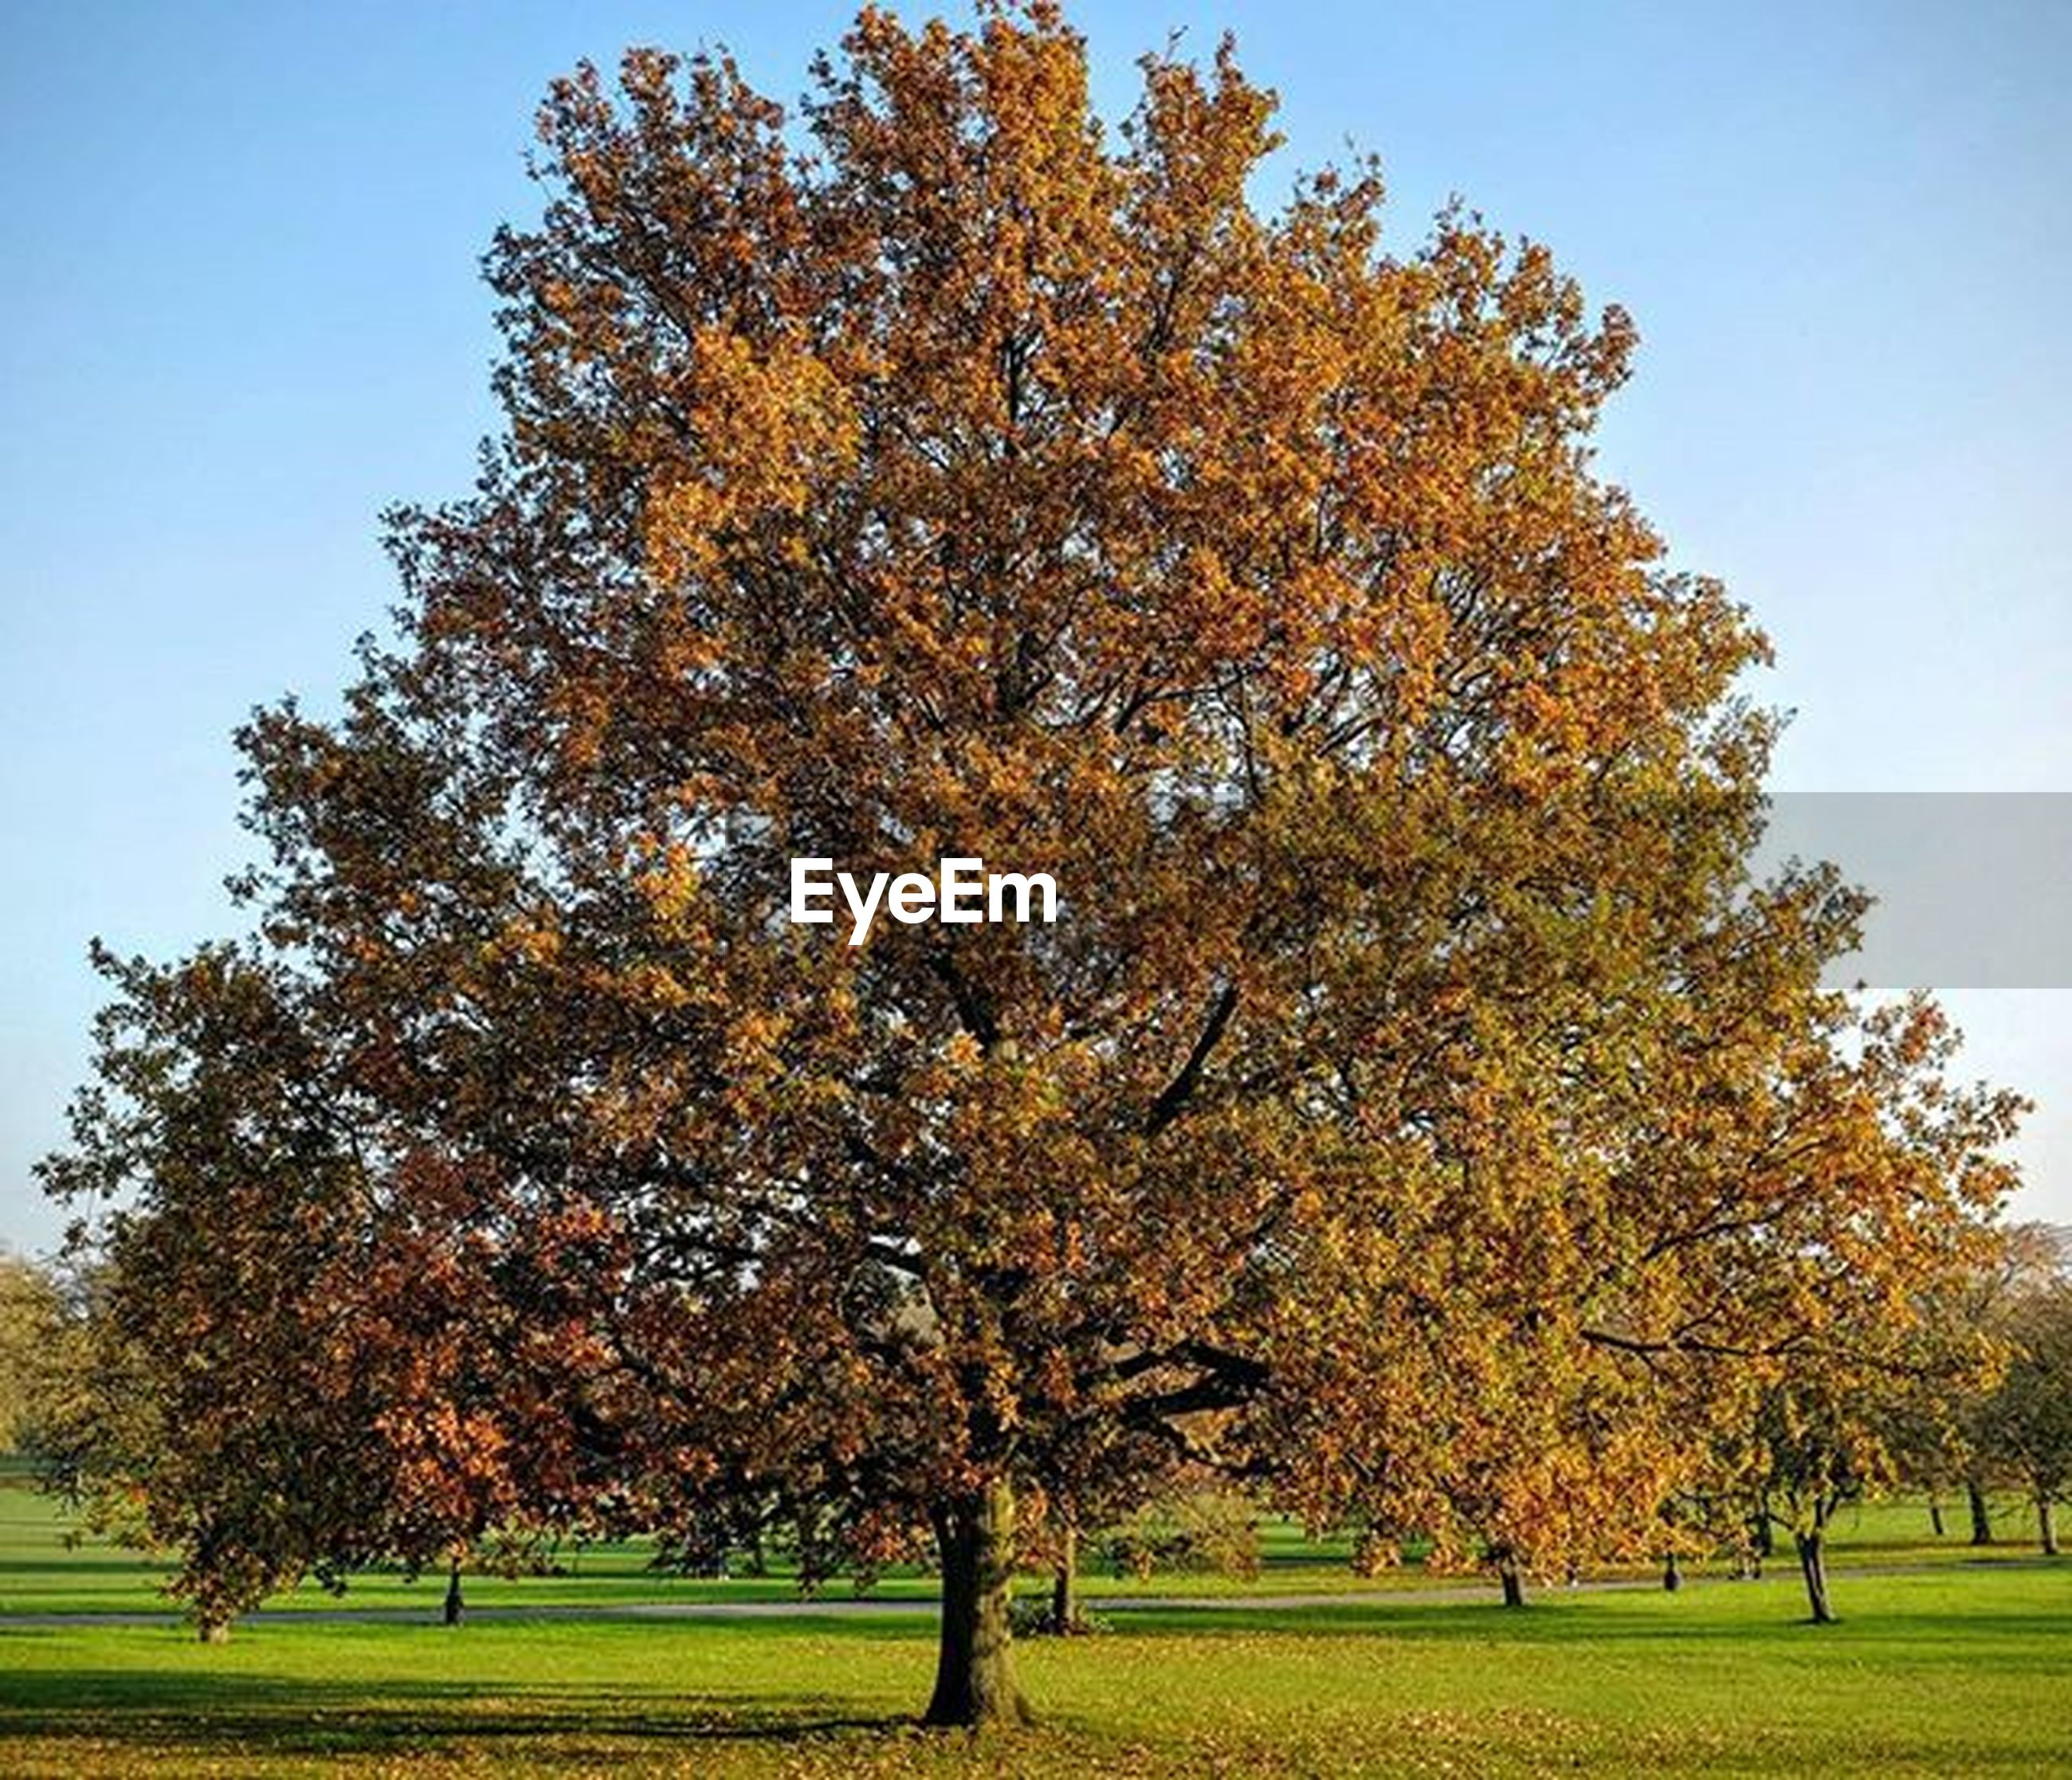 tree, autumn, change, season, grass, growth, beauty in nature, tranquility, branch, nature, field, tranquil scene, park - man made space, clear sky, sky, scenics, green color, orange color, landscape, day